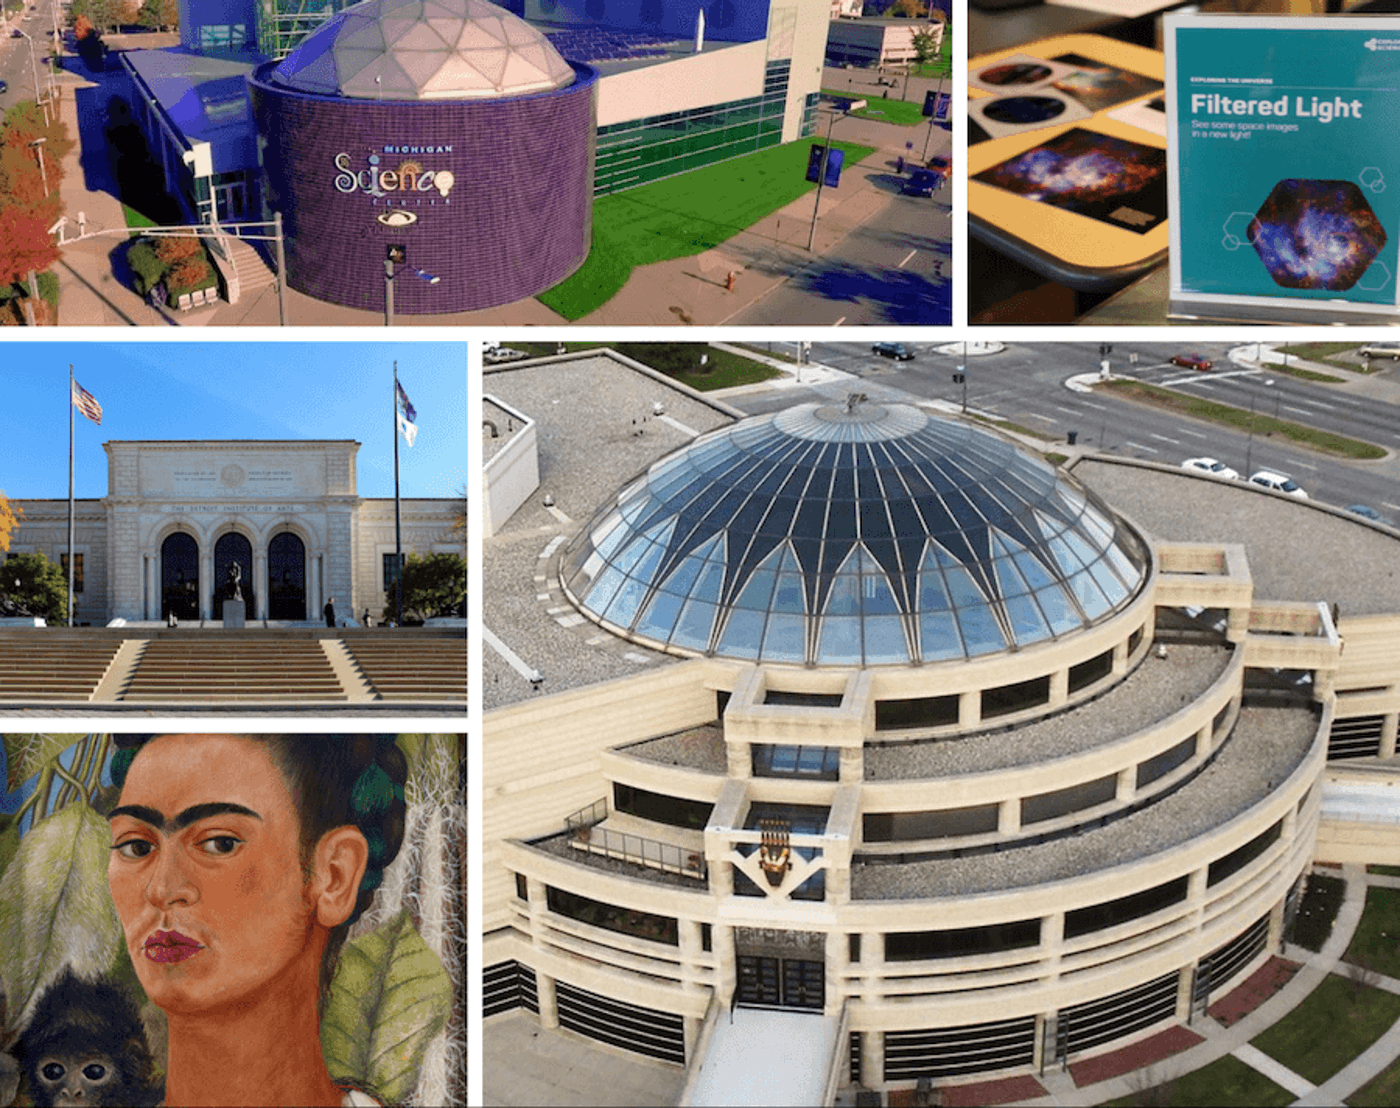 """Clockwise from top left: Michigan Science Center (photo via Wikimedia Commons); Explore the universe at the Michigan Science Center (Photo via Facebook); The Charles H. Wright Museum of African American History (Photo by Juan N Only via Flickr); """"Self-Portrait with Monkey"""" by Frida Kahlo (1938) is on loan to the DIA from the Albright-Knox Art Gallery in Buffalo, N.Y. for """"Guests of Honor: Frida Kahlo and Salvador Dalí."""" (Image via Facebook); Visitors will be able to walk the steps and enter the Detroit Institute of Arts this Friday. (Photo via Wikimedia Commons)"""